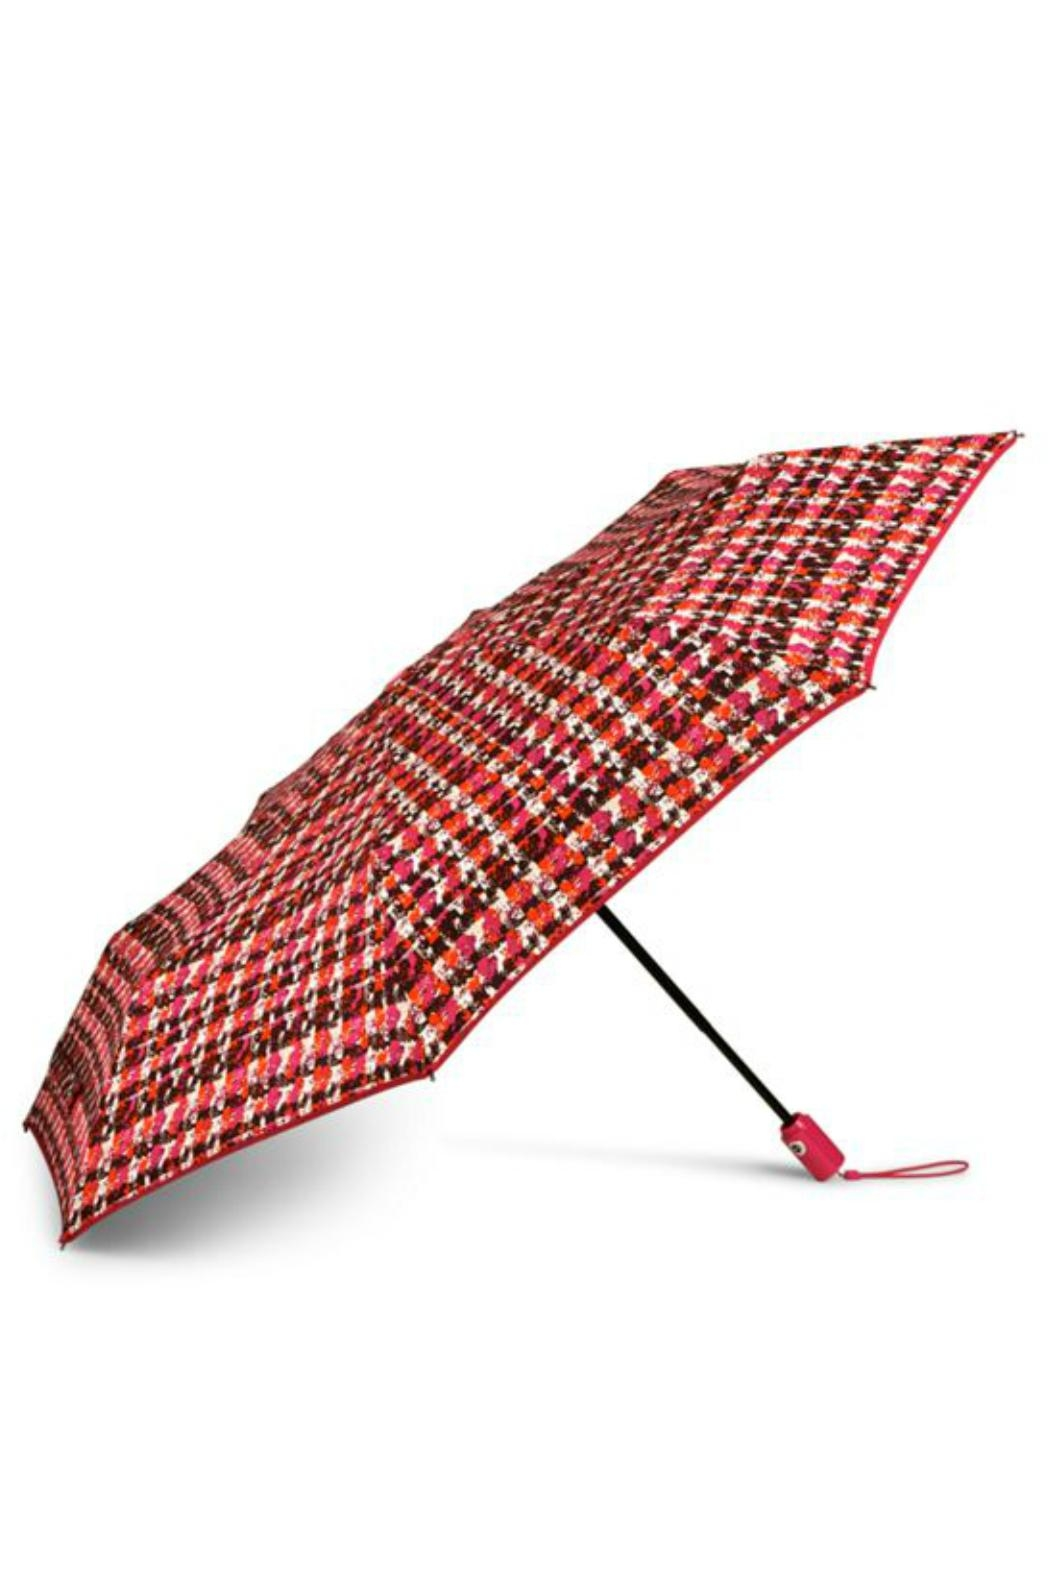 Vera Bradley Houndstooth Tweed Umbrella - Front Cropped Image